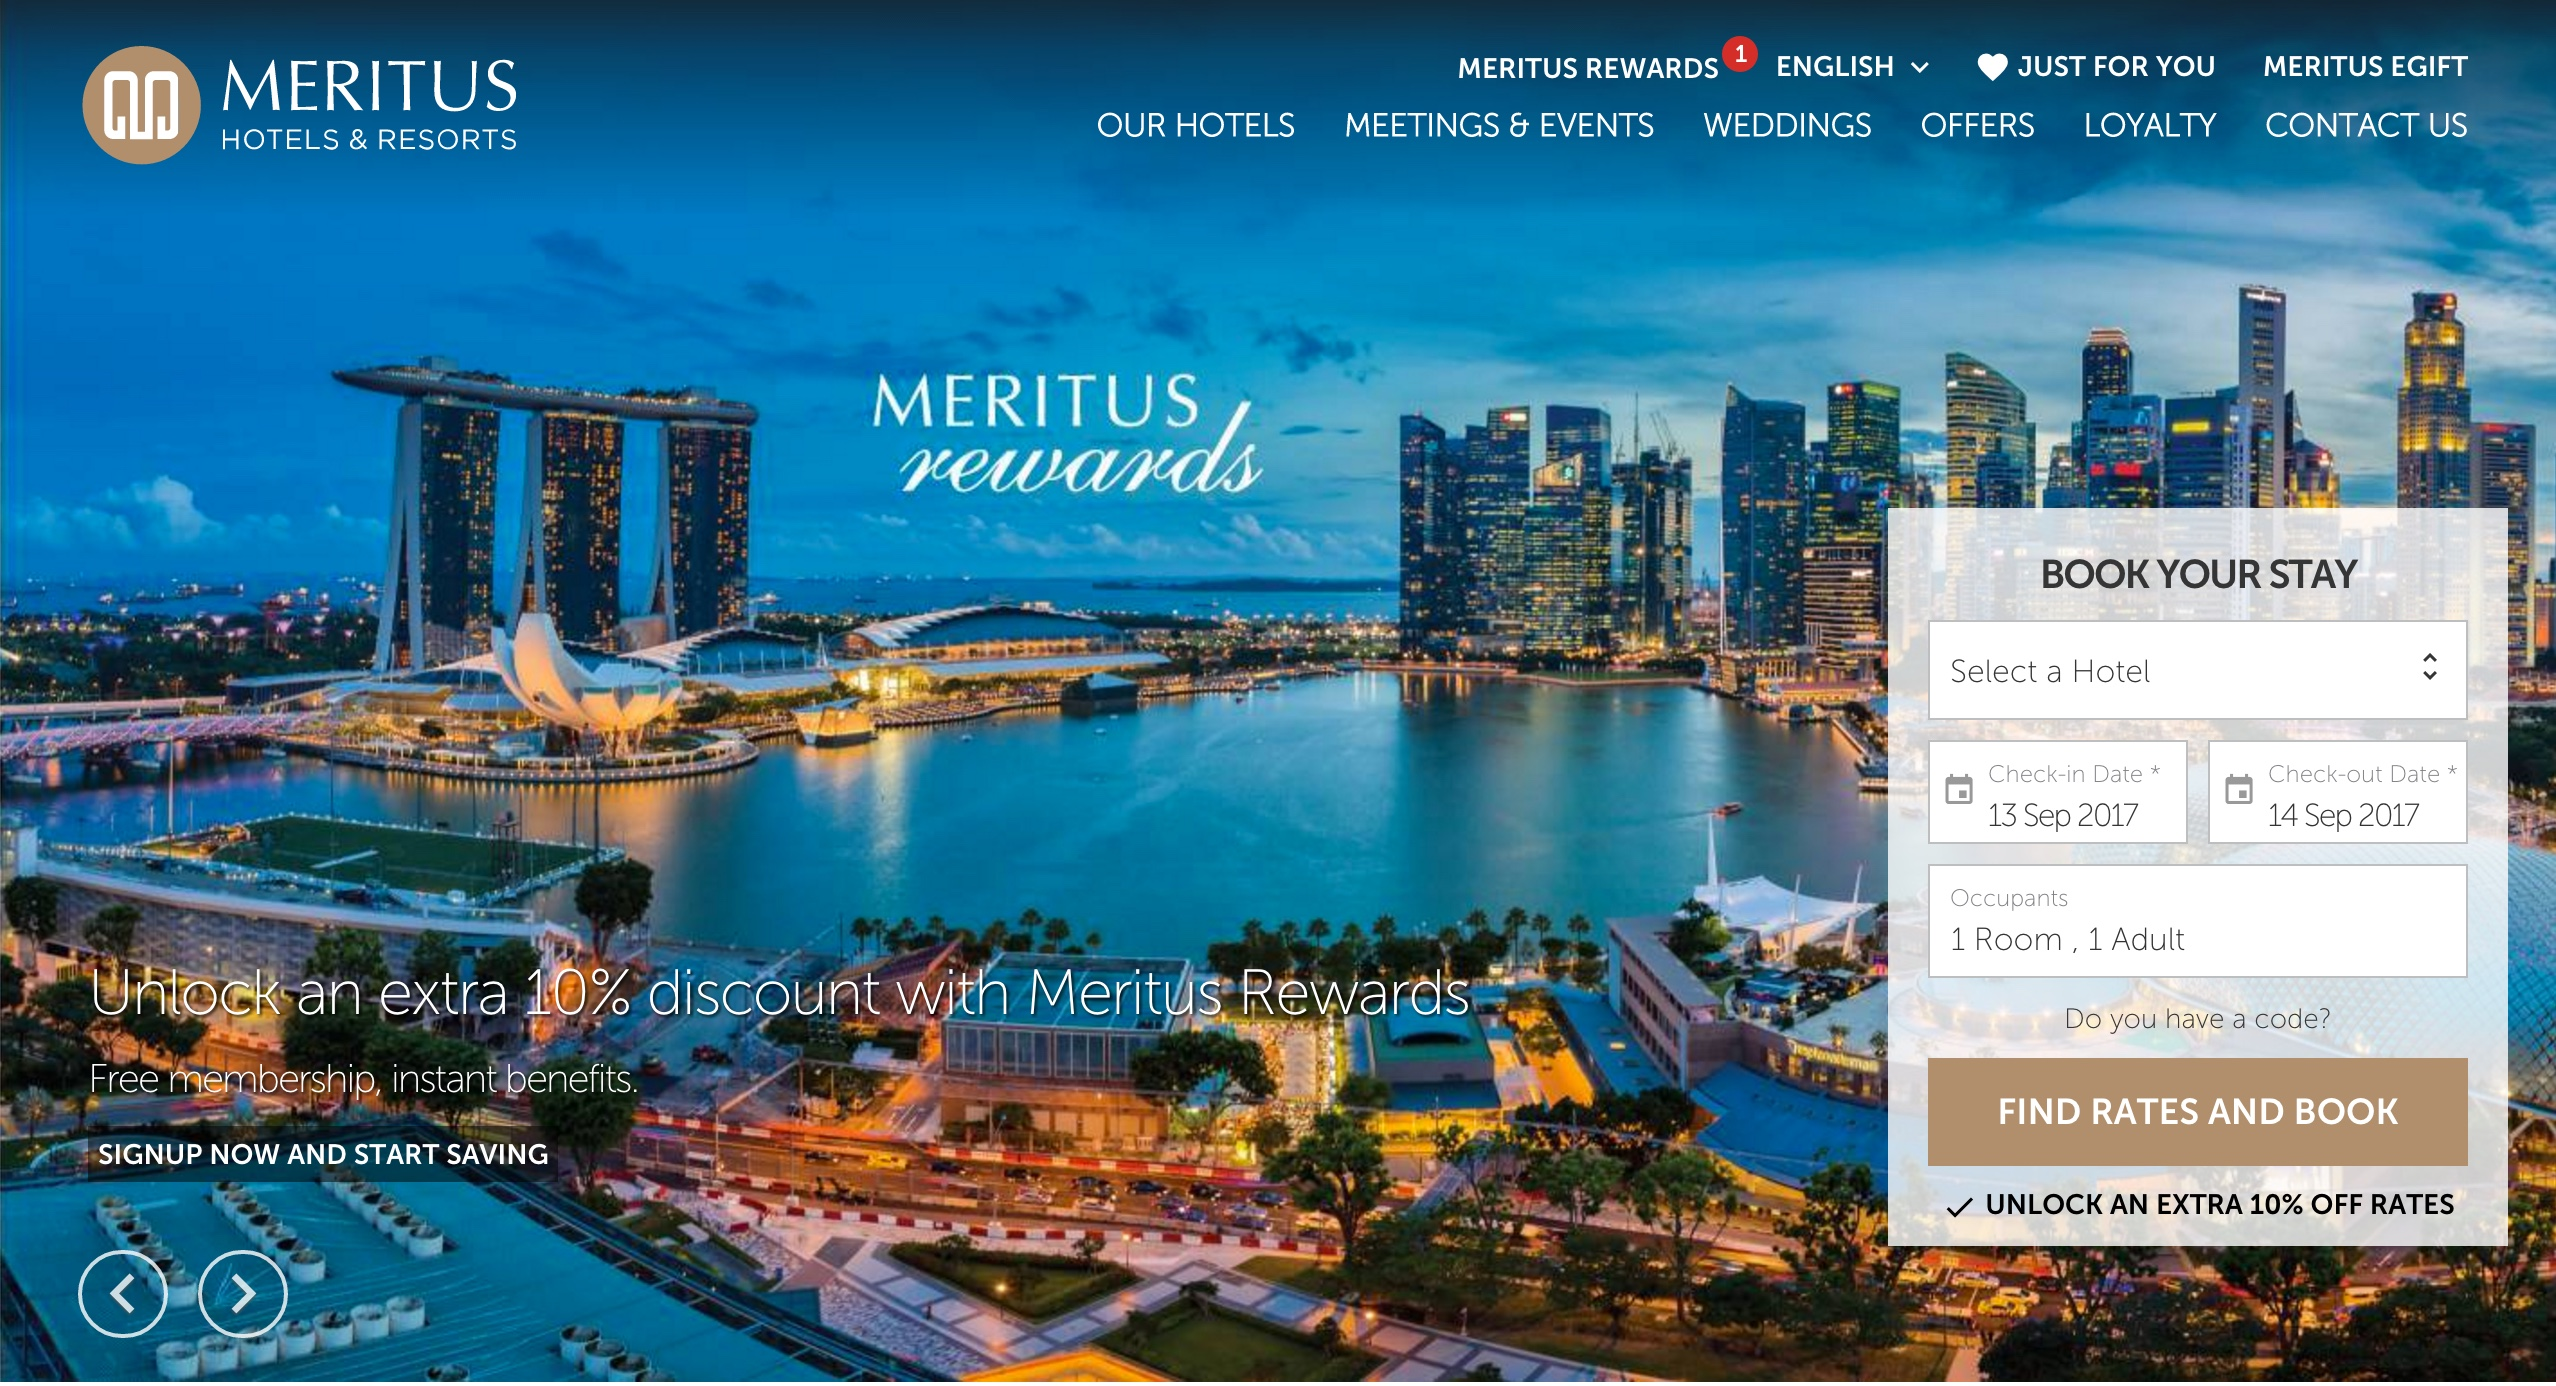 Meritus Hotels & Resorts